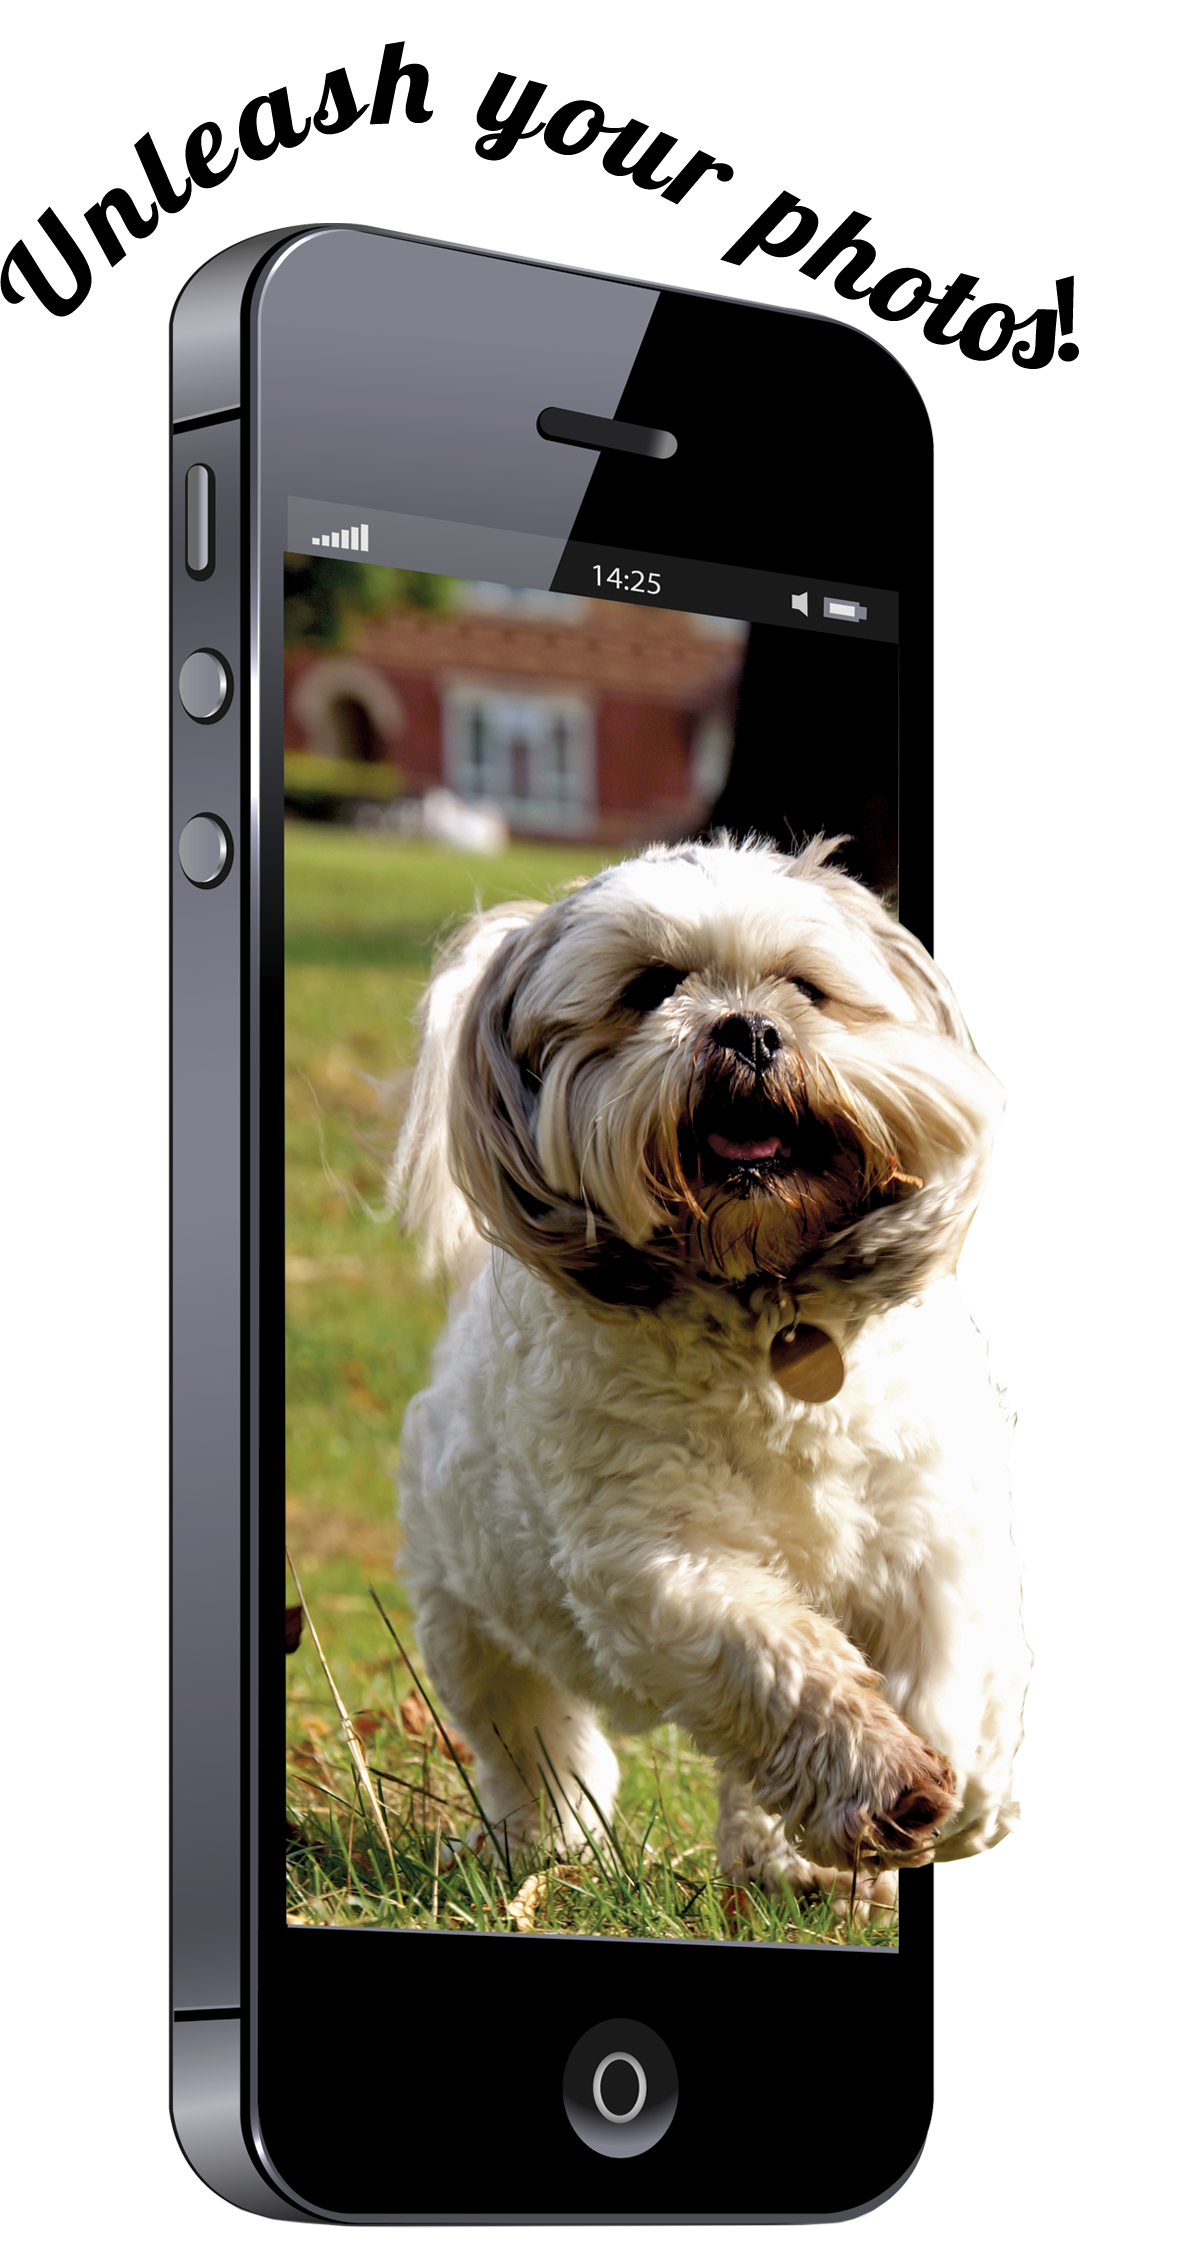 Cell phone with image of dog jumping out of screen. Unleash your photos!